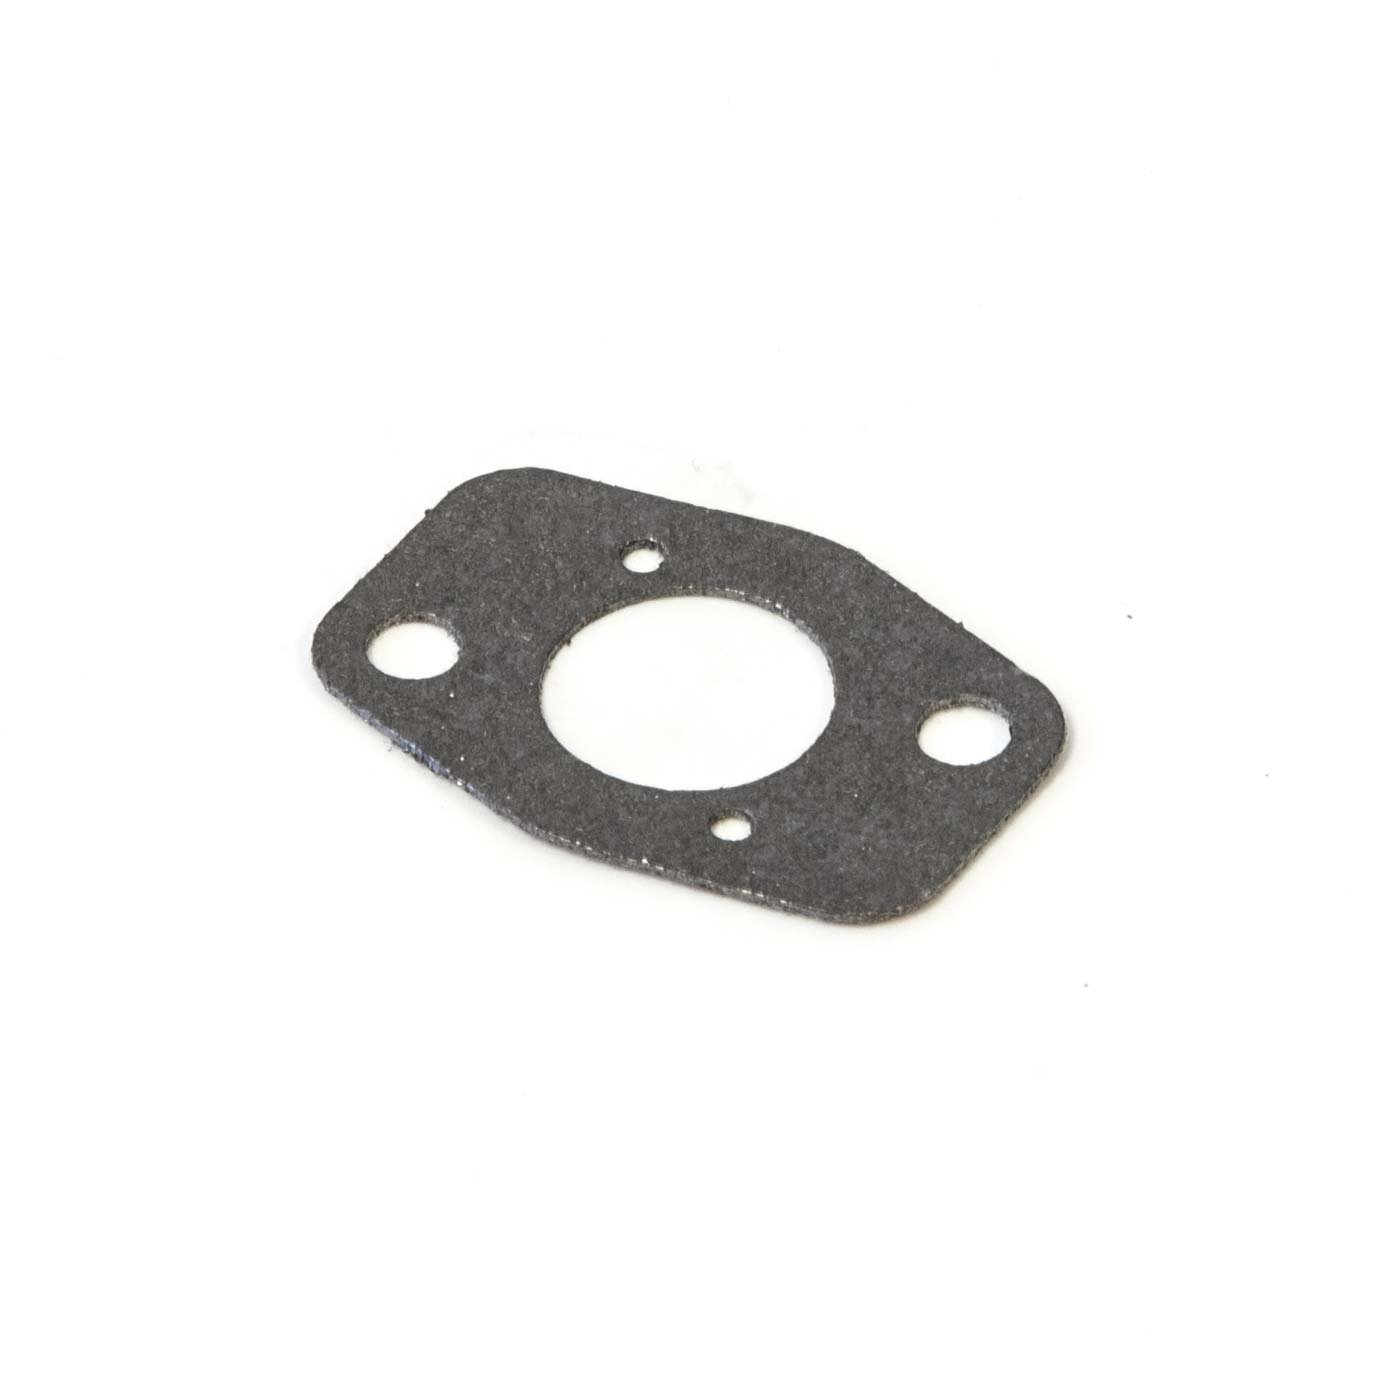 Gasket cylinder / insulator for ZG 38/S/SC